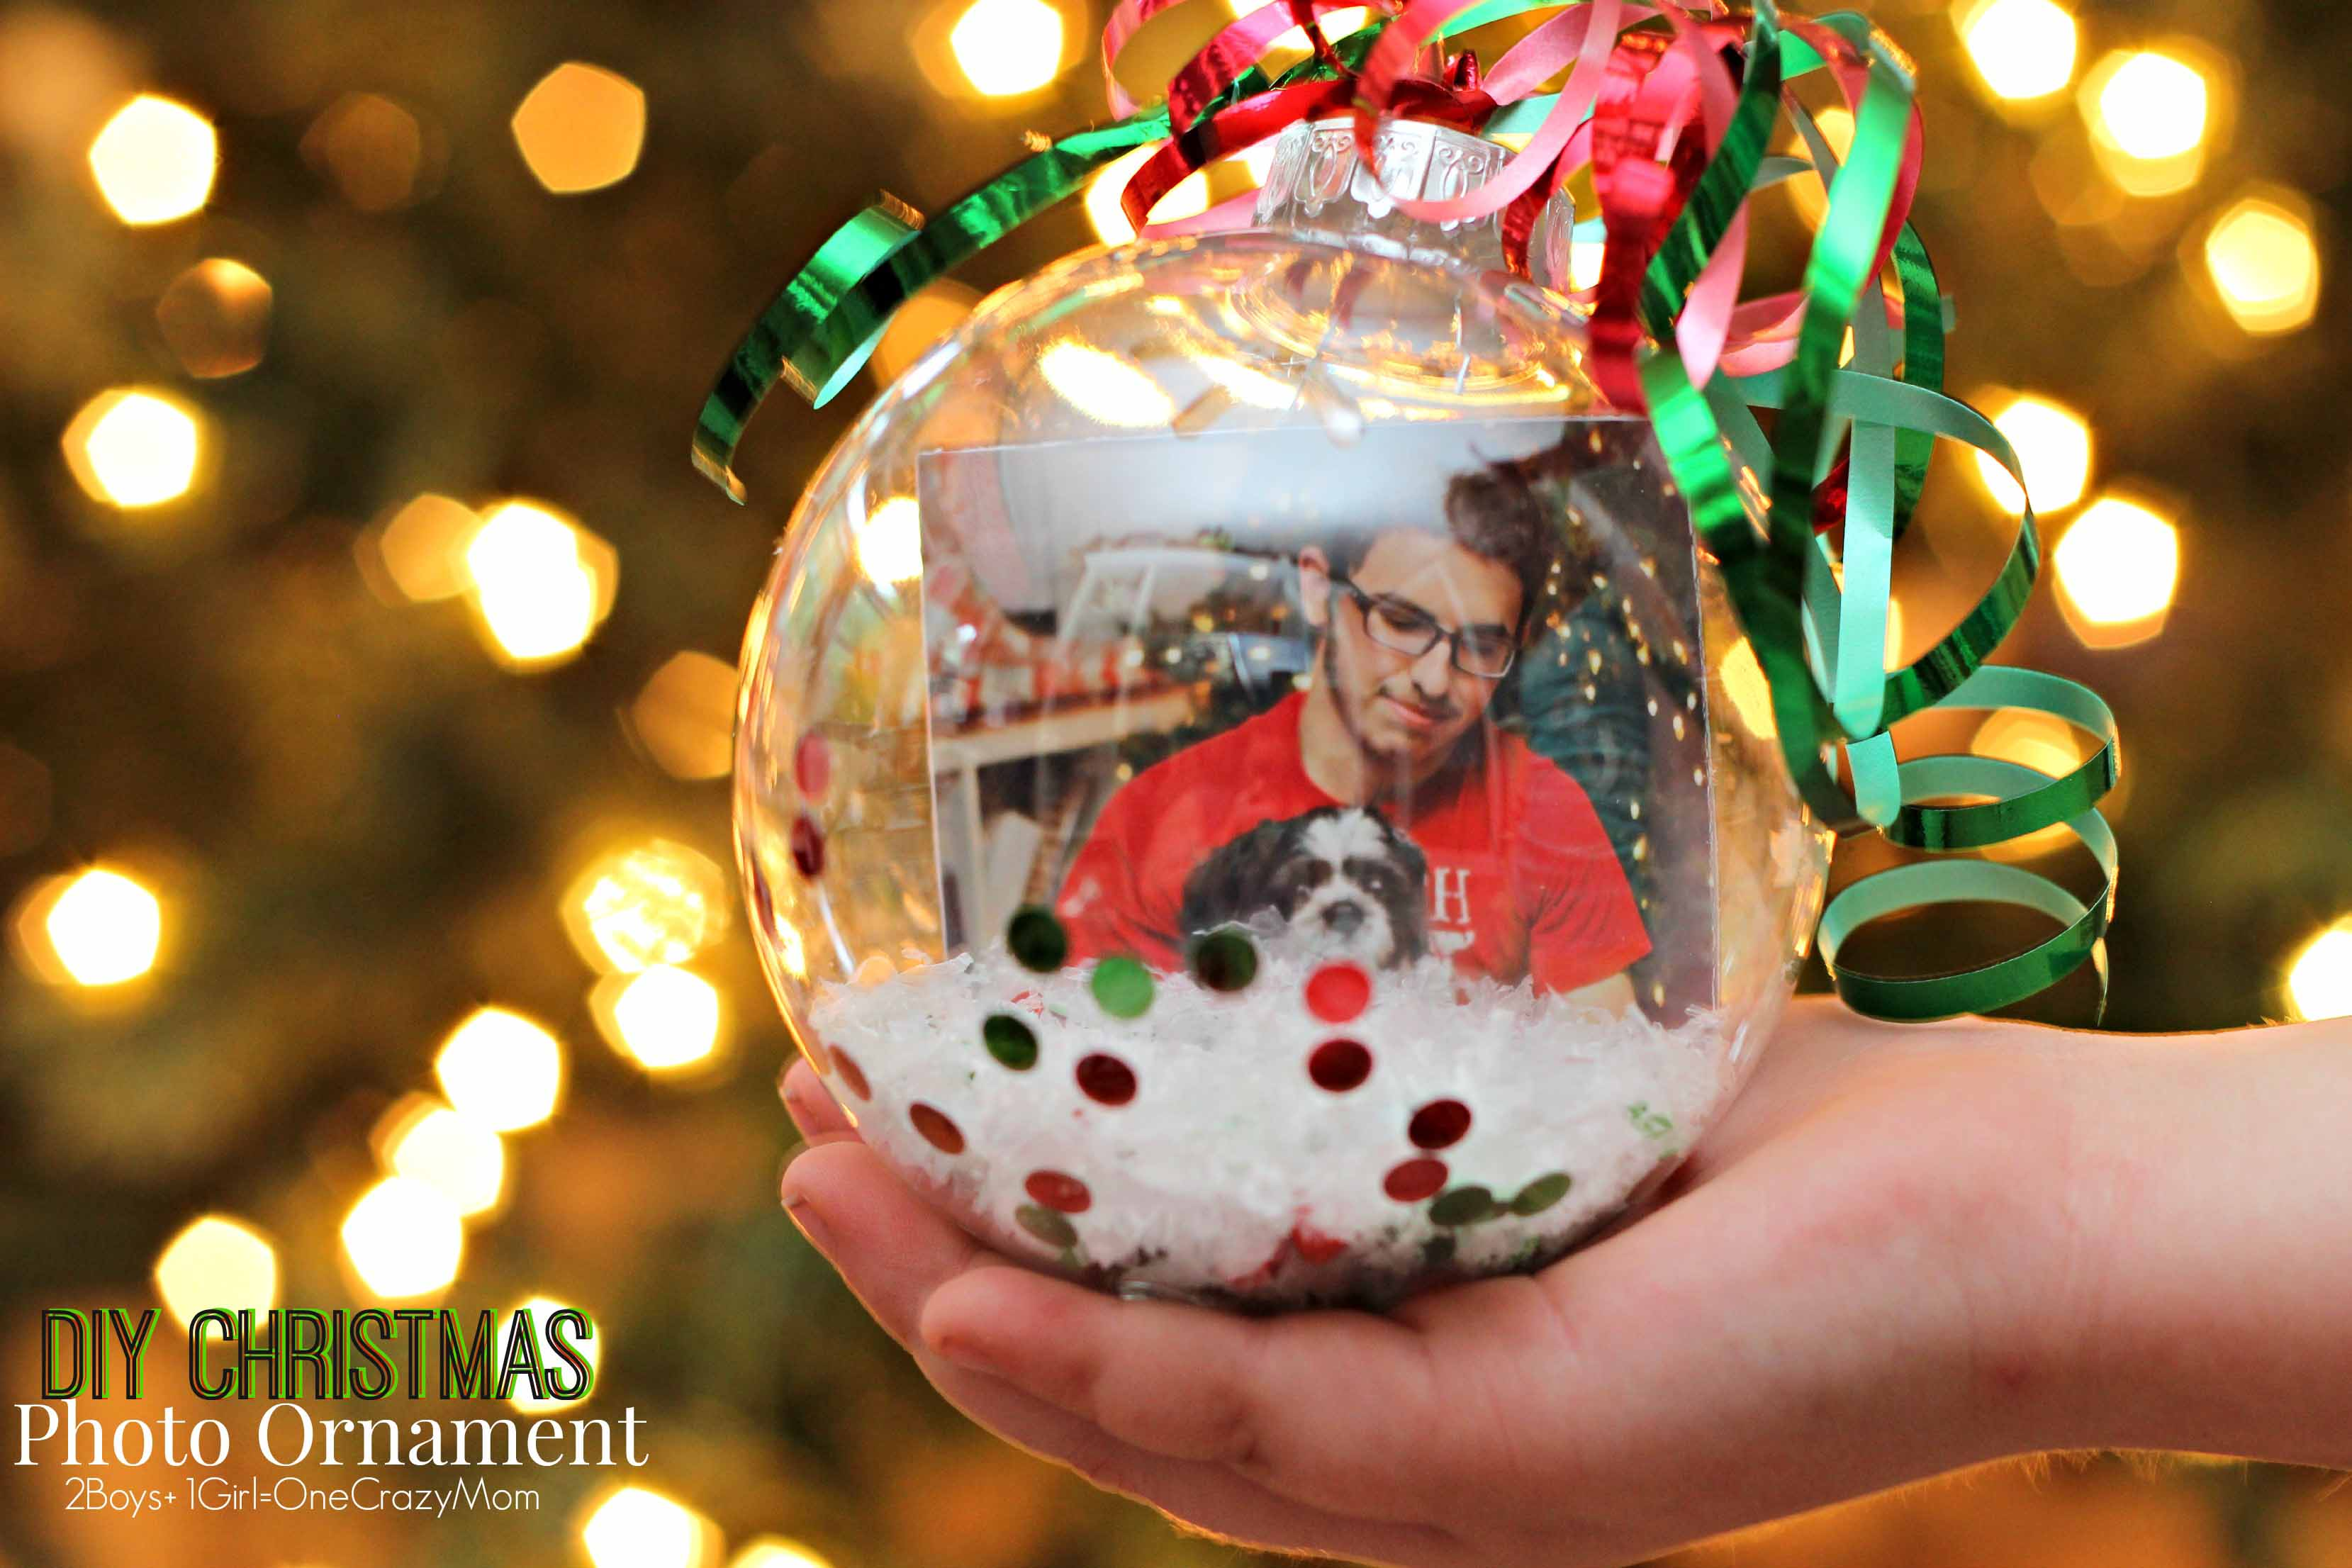 Diy christmas photo ornaments are the perfect gift idea for Decorate your own christmas decorations